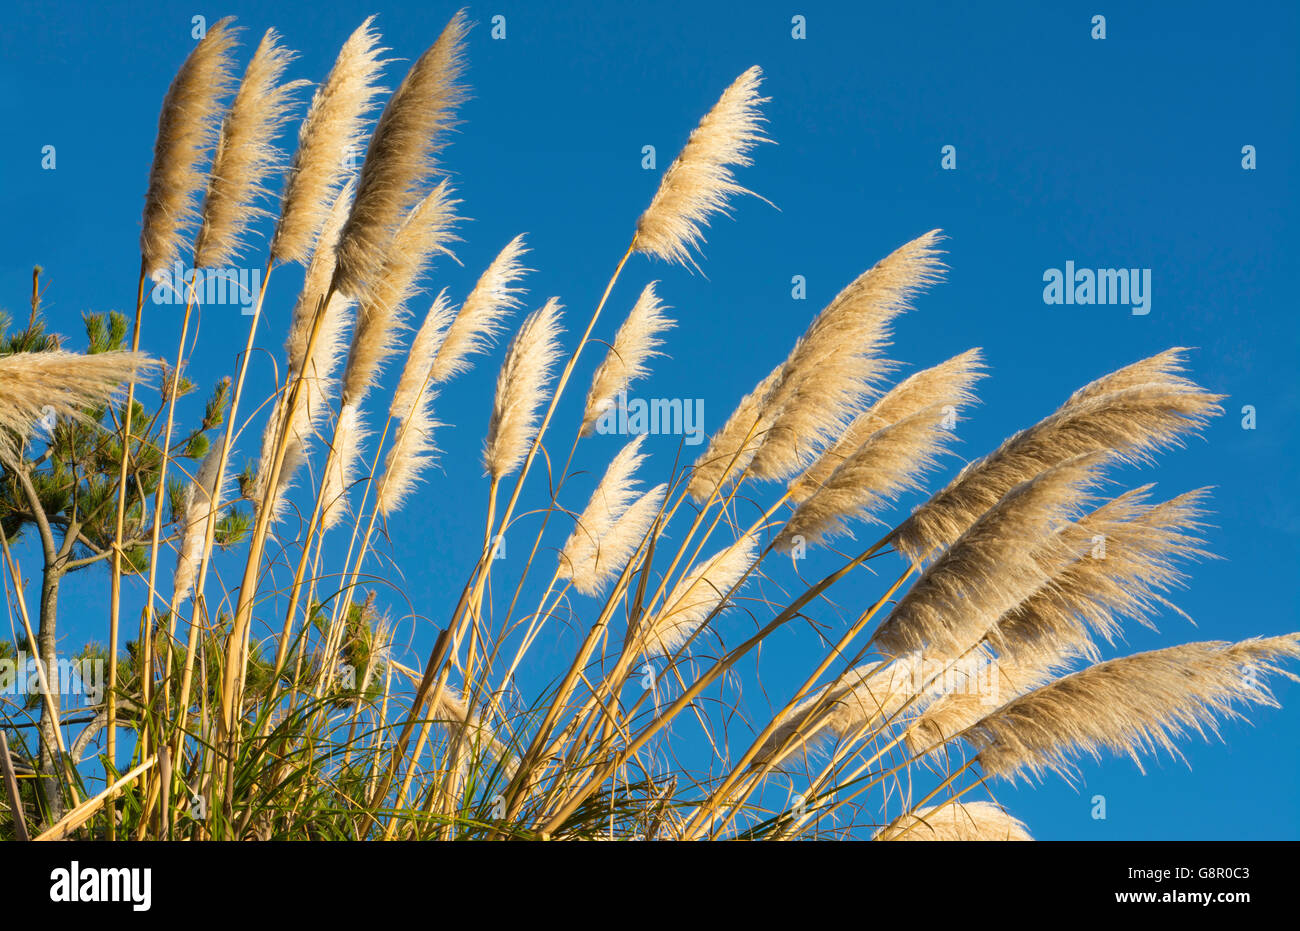 Pacific Coast Highway #1 California tan Pampas Grass near highway into the blue sky graphic plants - Stock Image